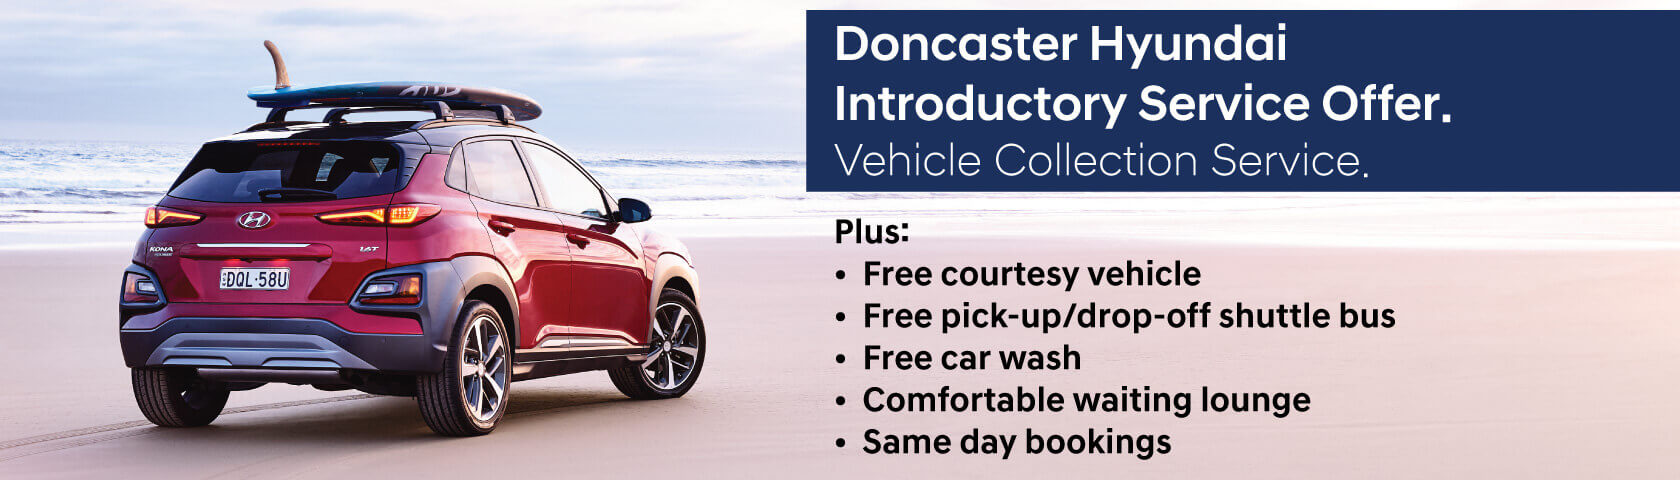 Doncaster Hyundai Introductory Service Offer